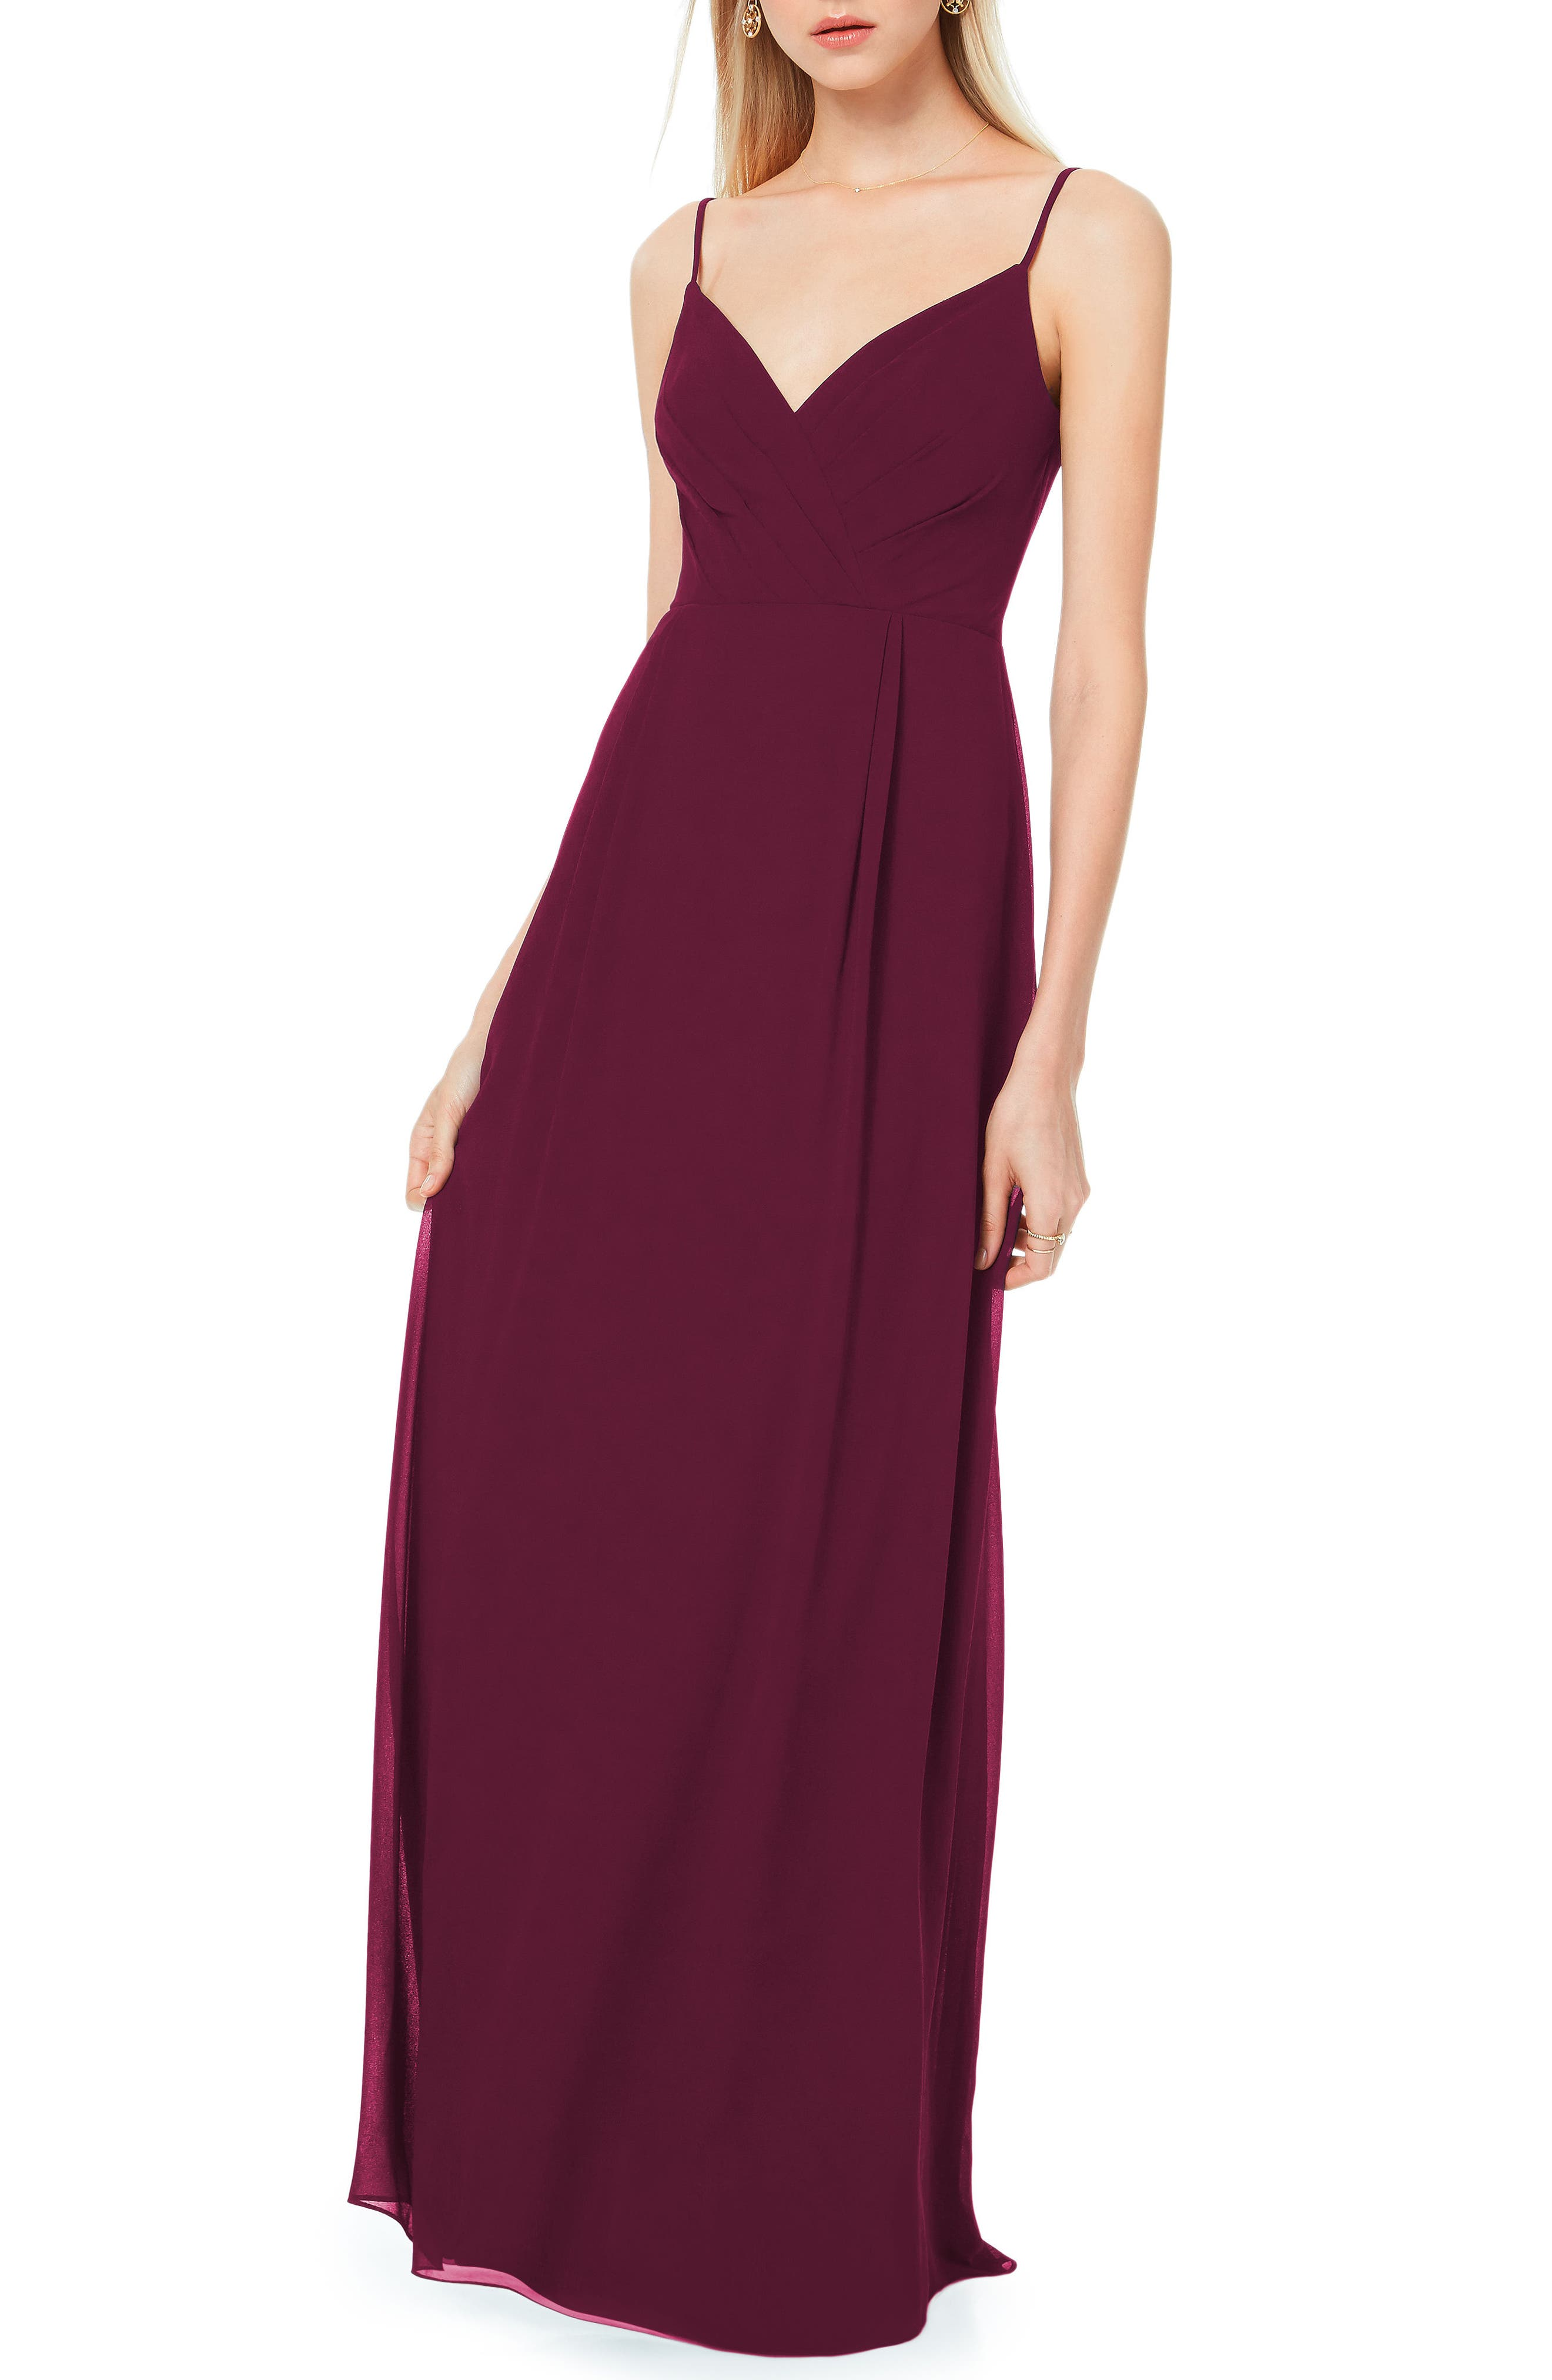 #LEVKOFF, Pleated Bodice Chiffon Gown, Main thumbnail 1, color, WINE